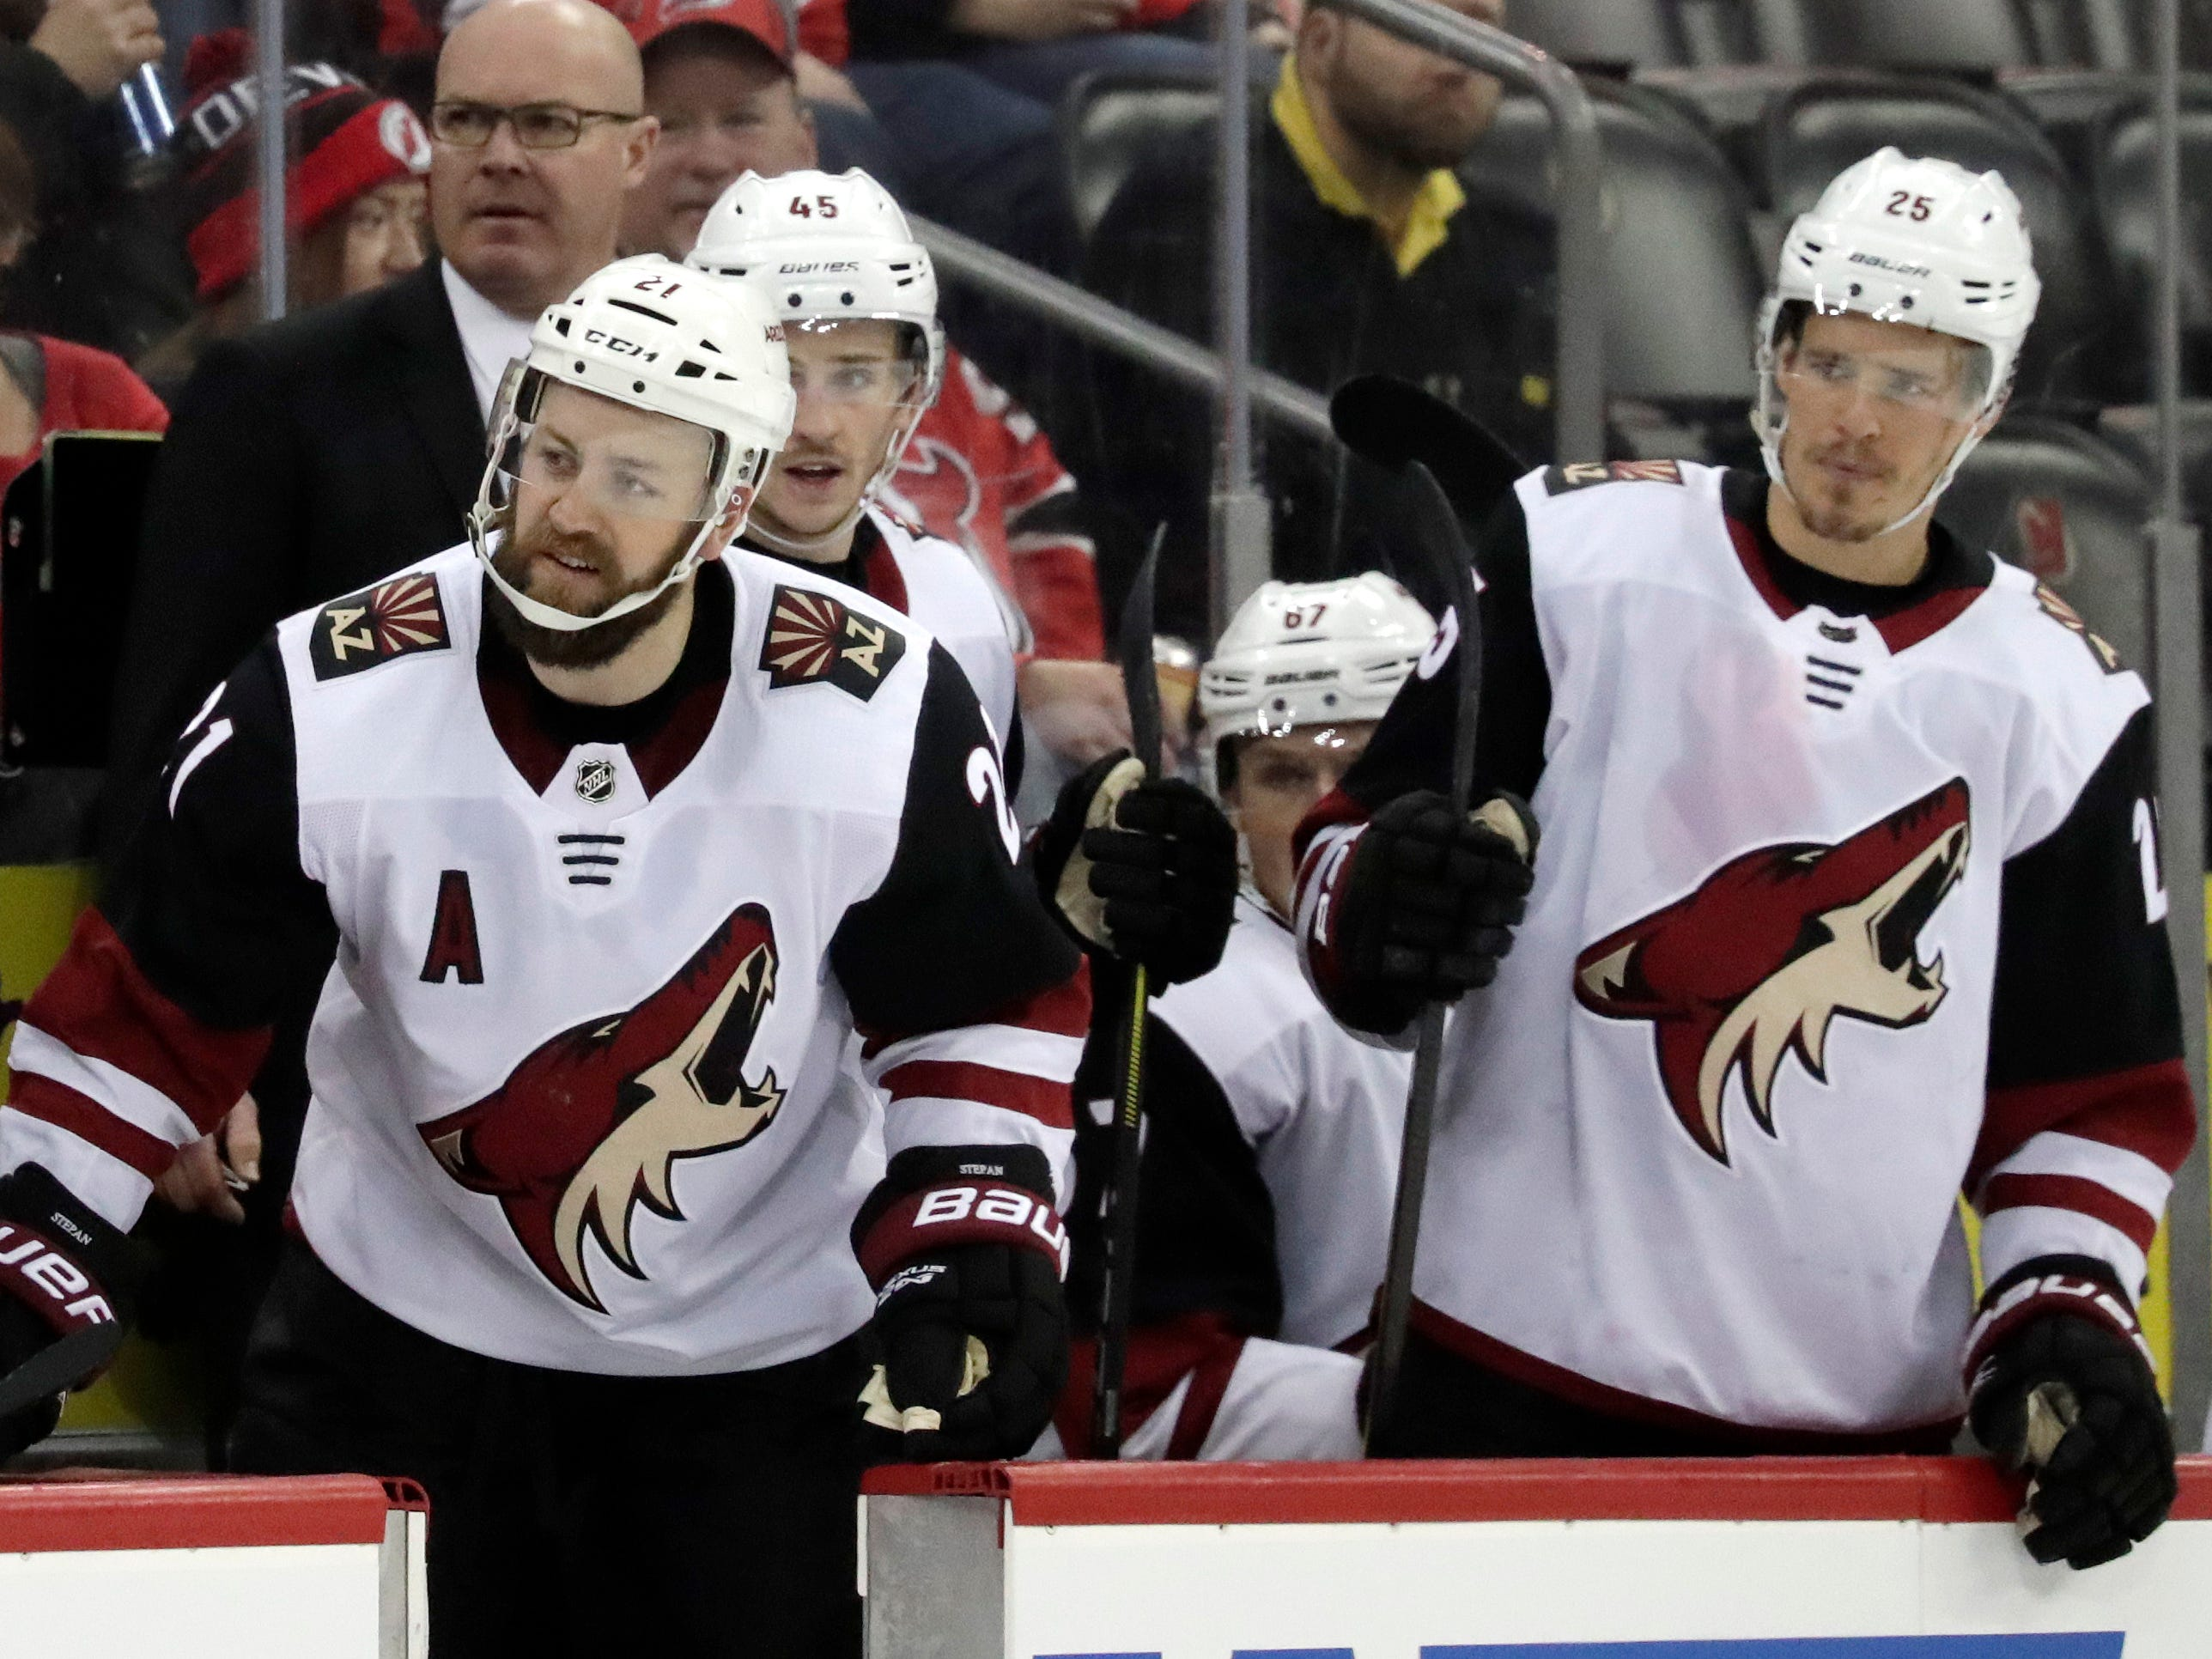 Arizona Coyotes center Derek Stepan, left, looks over at the New Jersey Devils bench during the third period of an NHL hockey game, Saturday, March 23, 2019, in Newark, N.J. The Devils on 2-1 in a shootout.